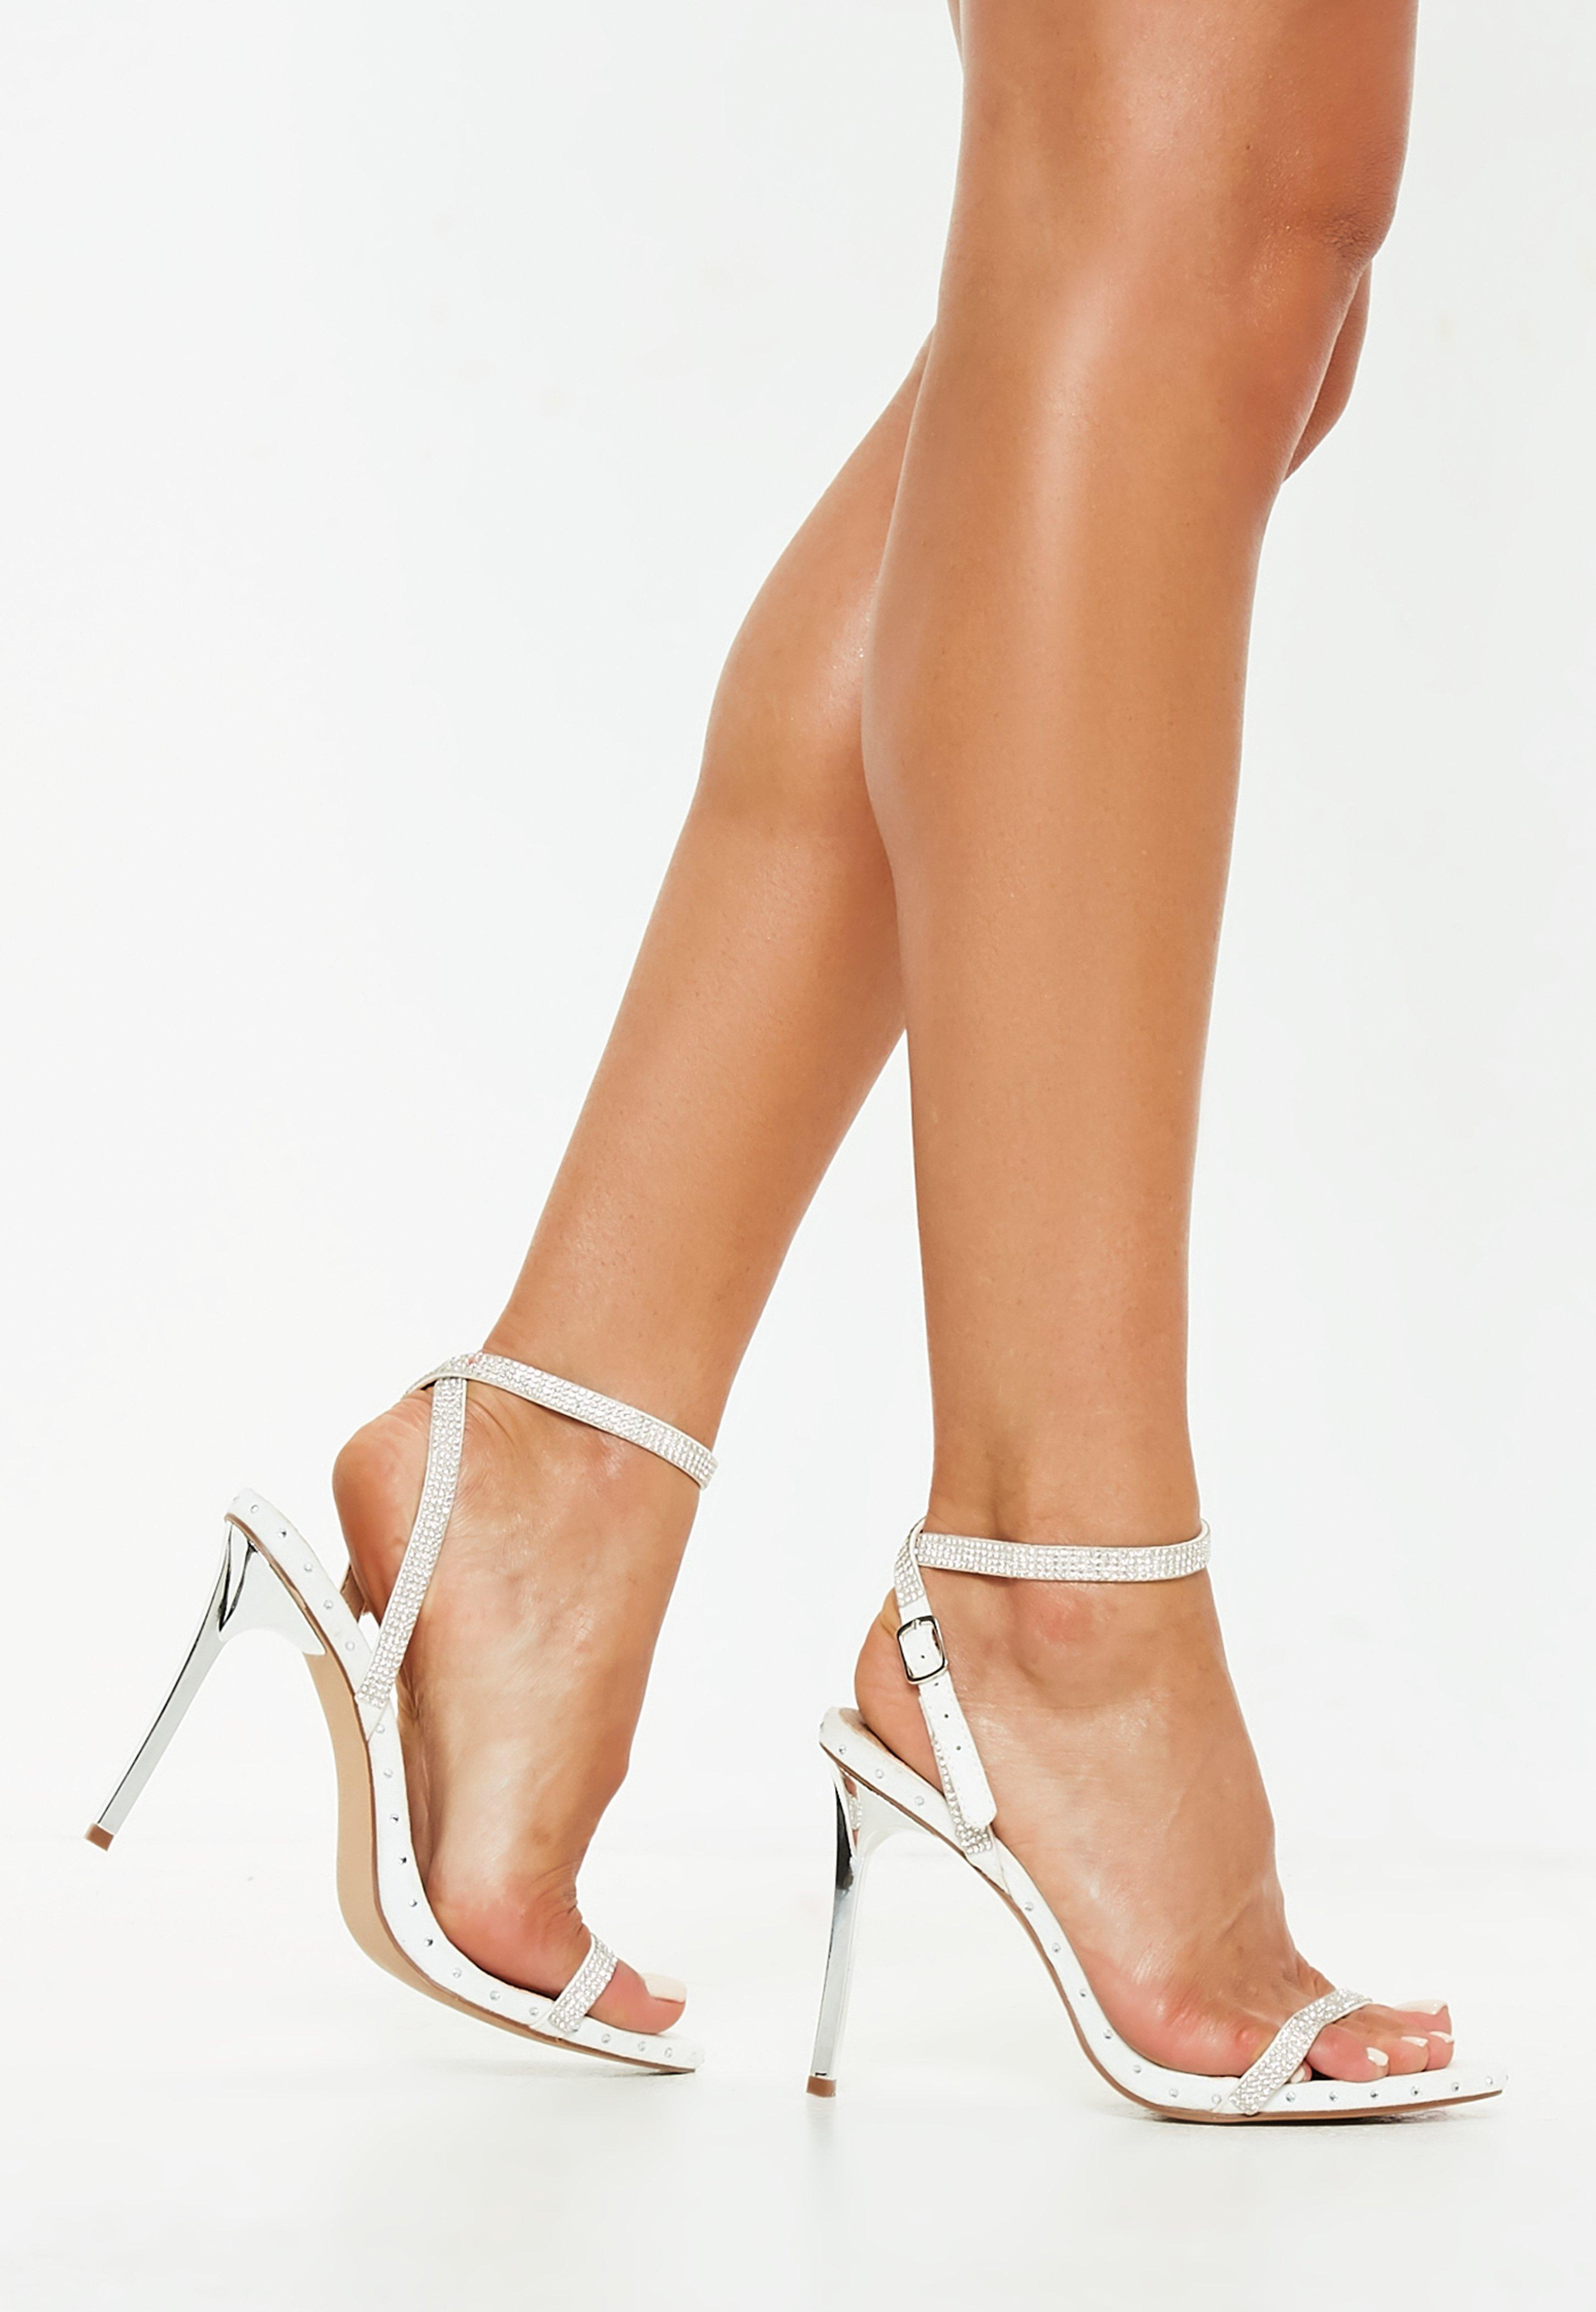 32f4bbba86c5 Lyst - Missguided White Embellished Studded Barely There Heels in White